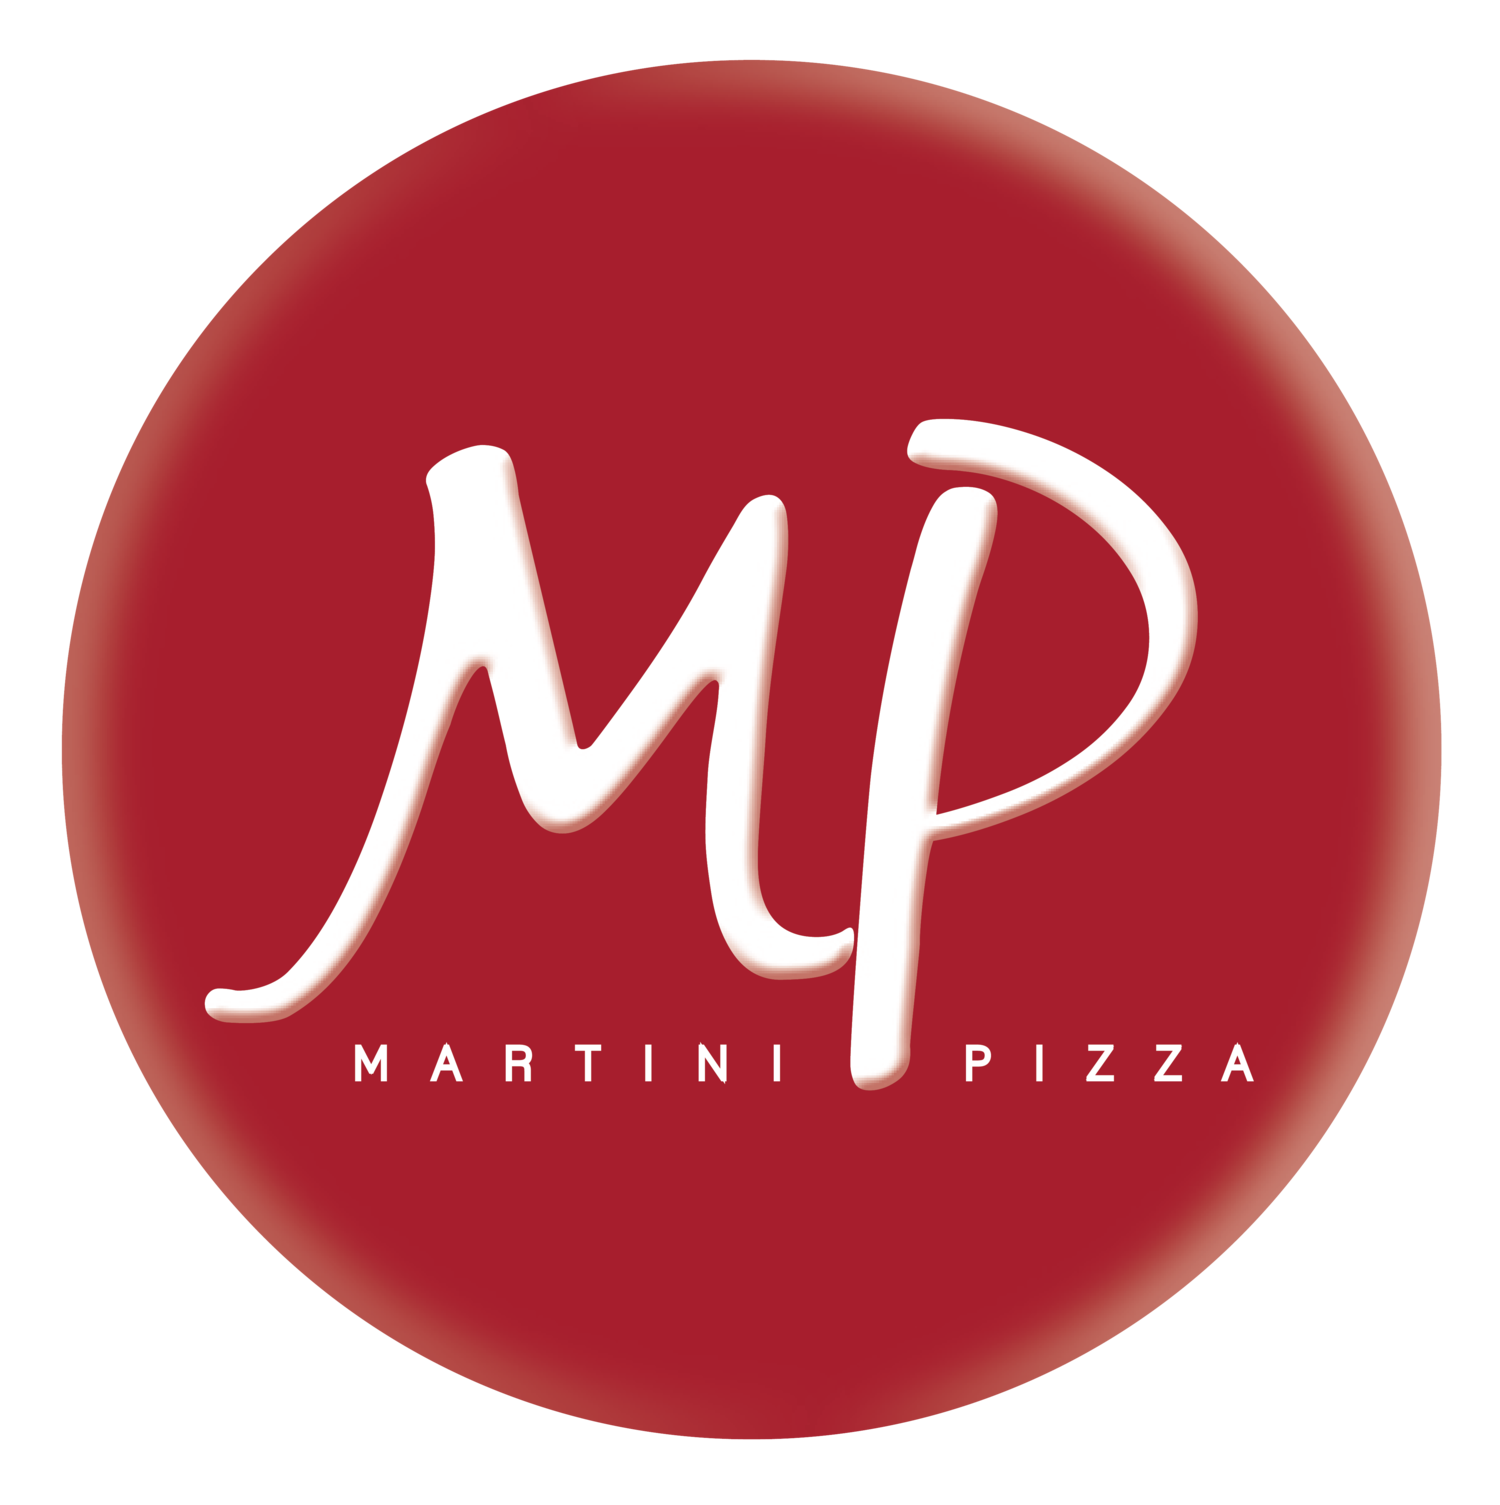 Martini & Pizza